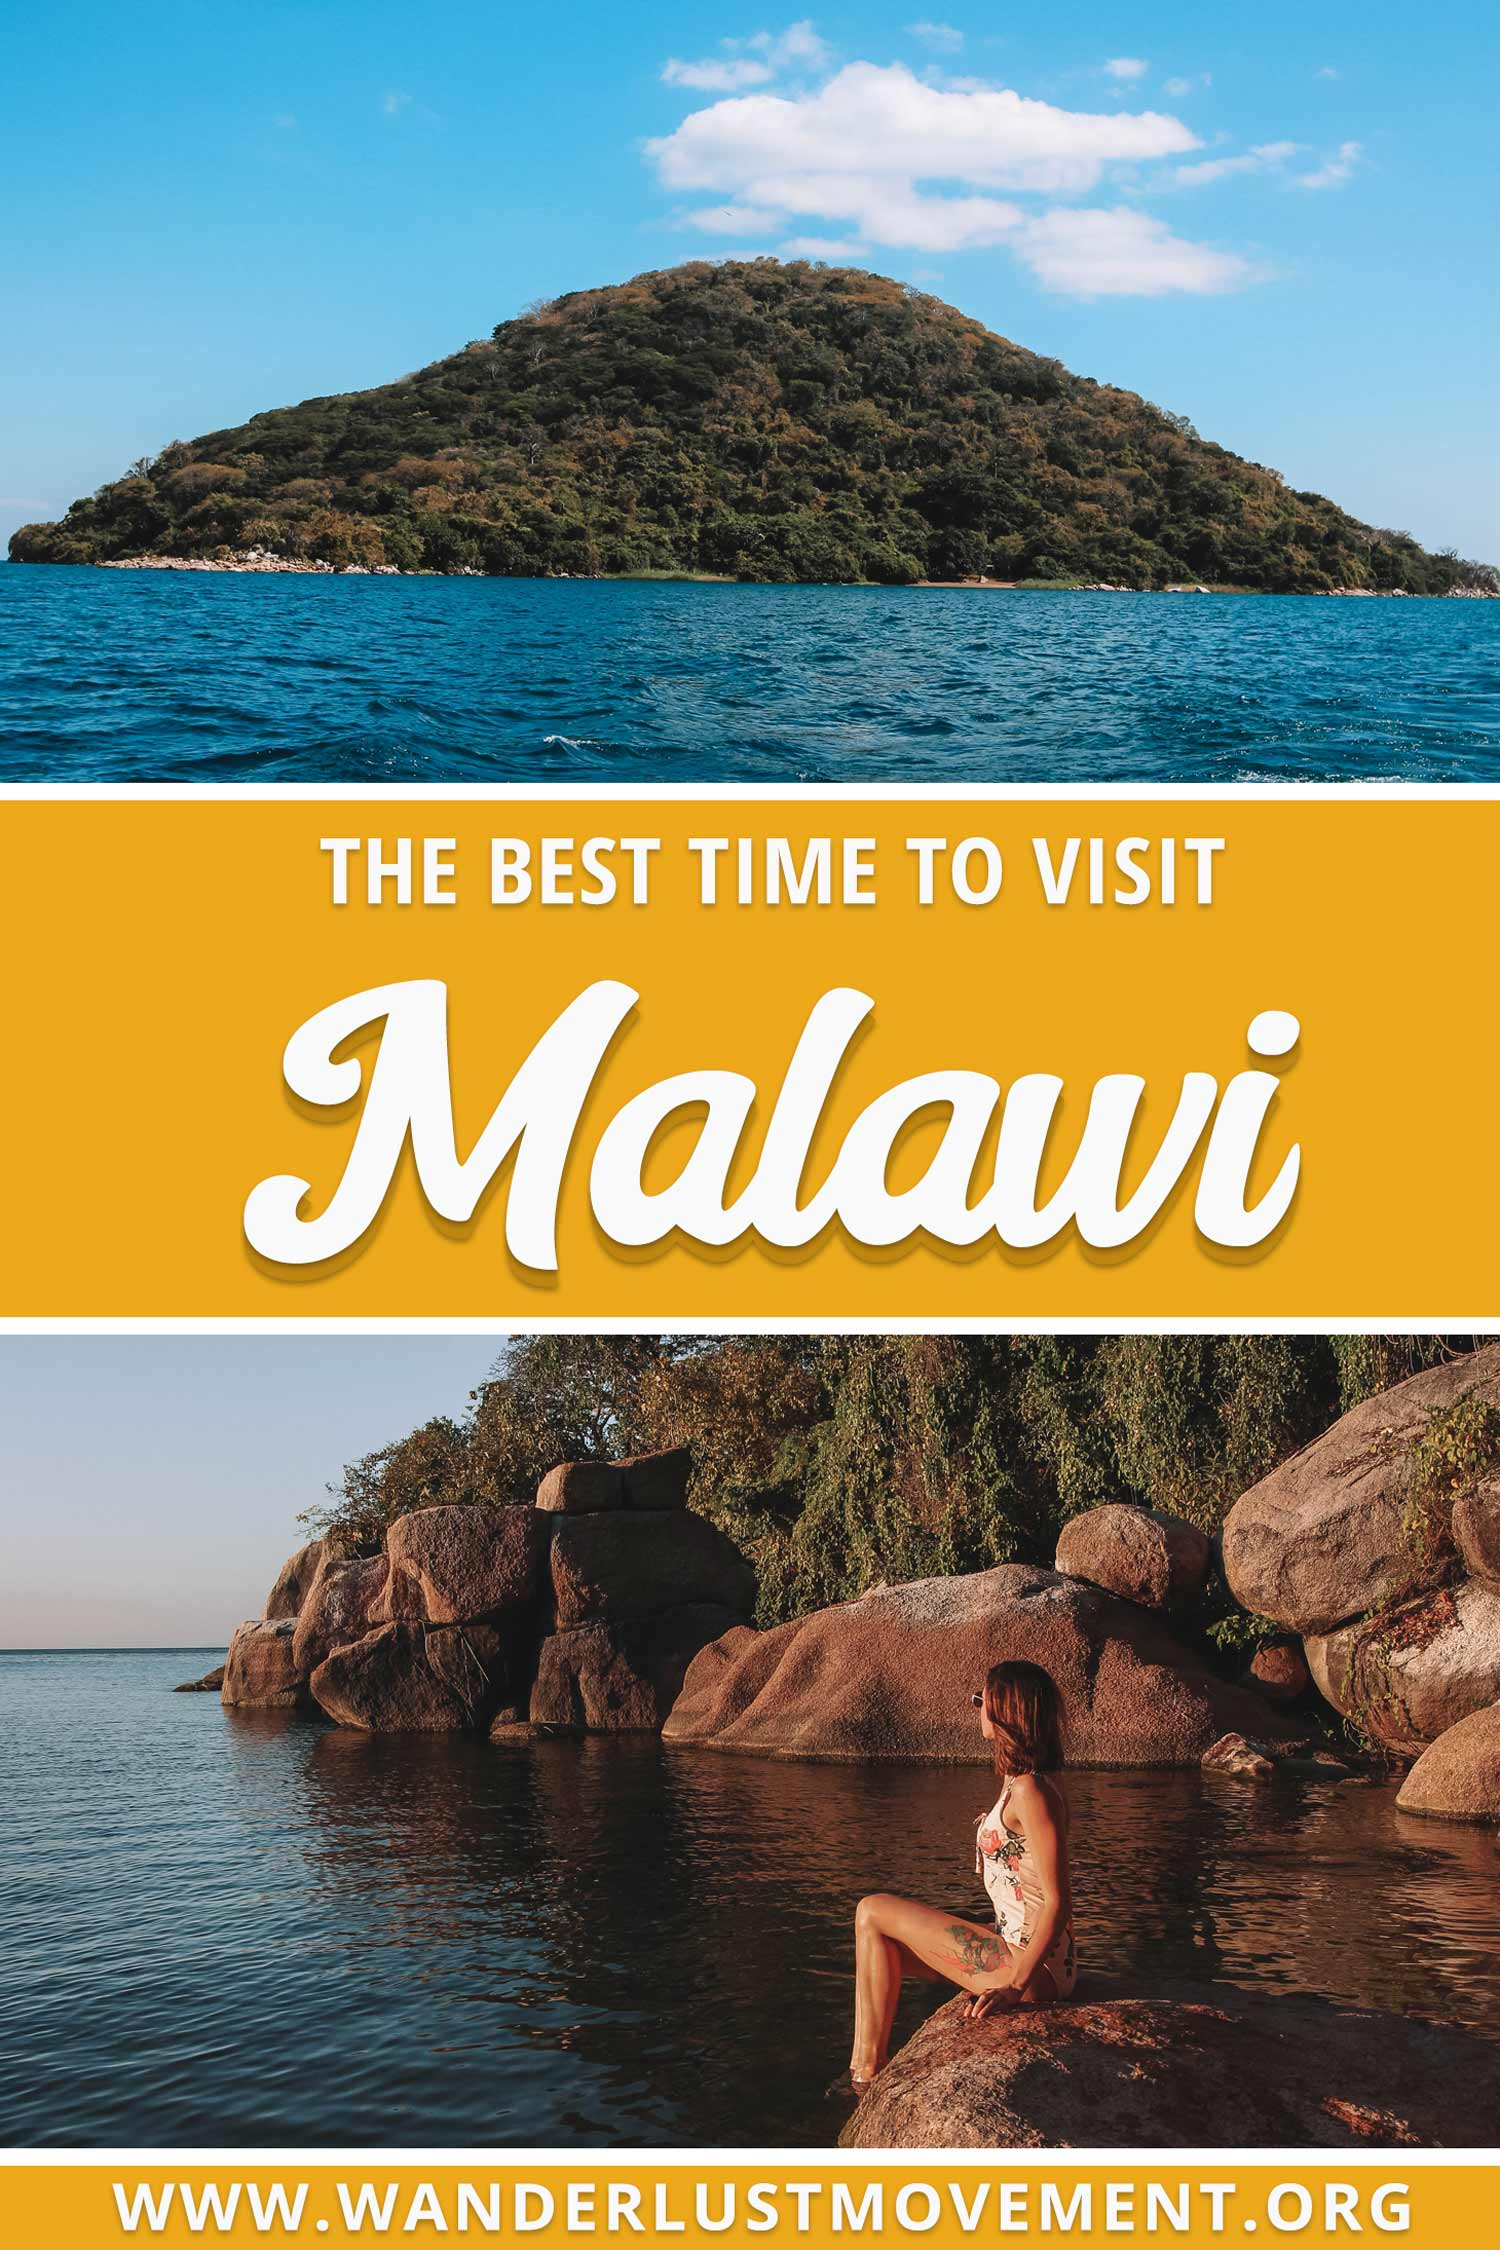 Malawi is an incredible destination in Africa! Whether you\'re looking to plan a Big 5 safari or relax on Mumbo Island in Lake Malawi National Park - there\'s something for everyone. But before you book your flights, you need to take into the account Malawi\'s two distinct seasons. Otherwise, you might visit during the rainy season - the worst time for safaris, but the best time for birding. Here\'s the best time to visit Malawi! #malawi #africatravel